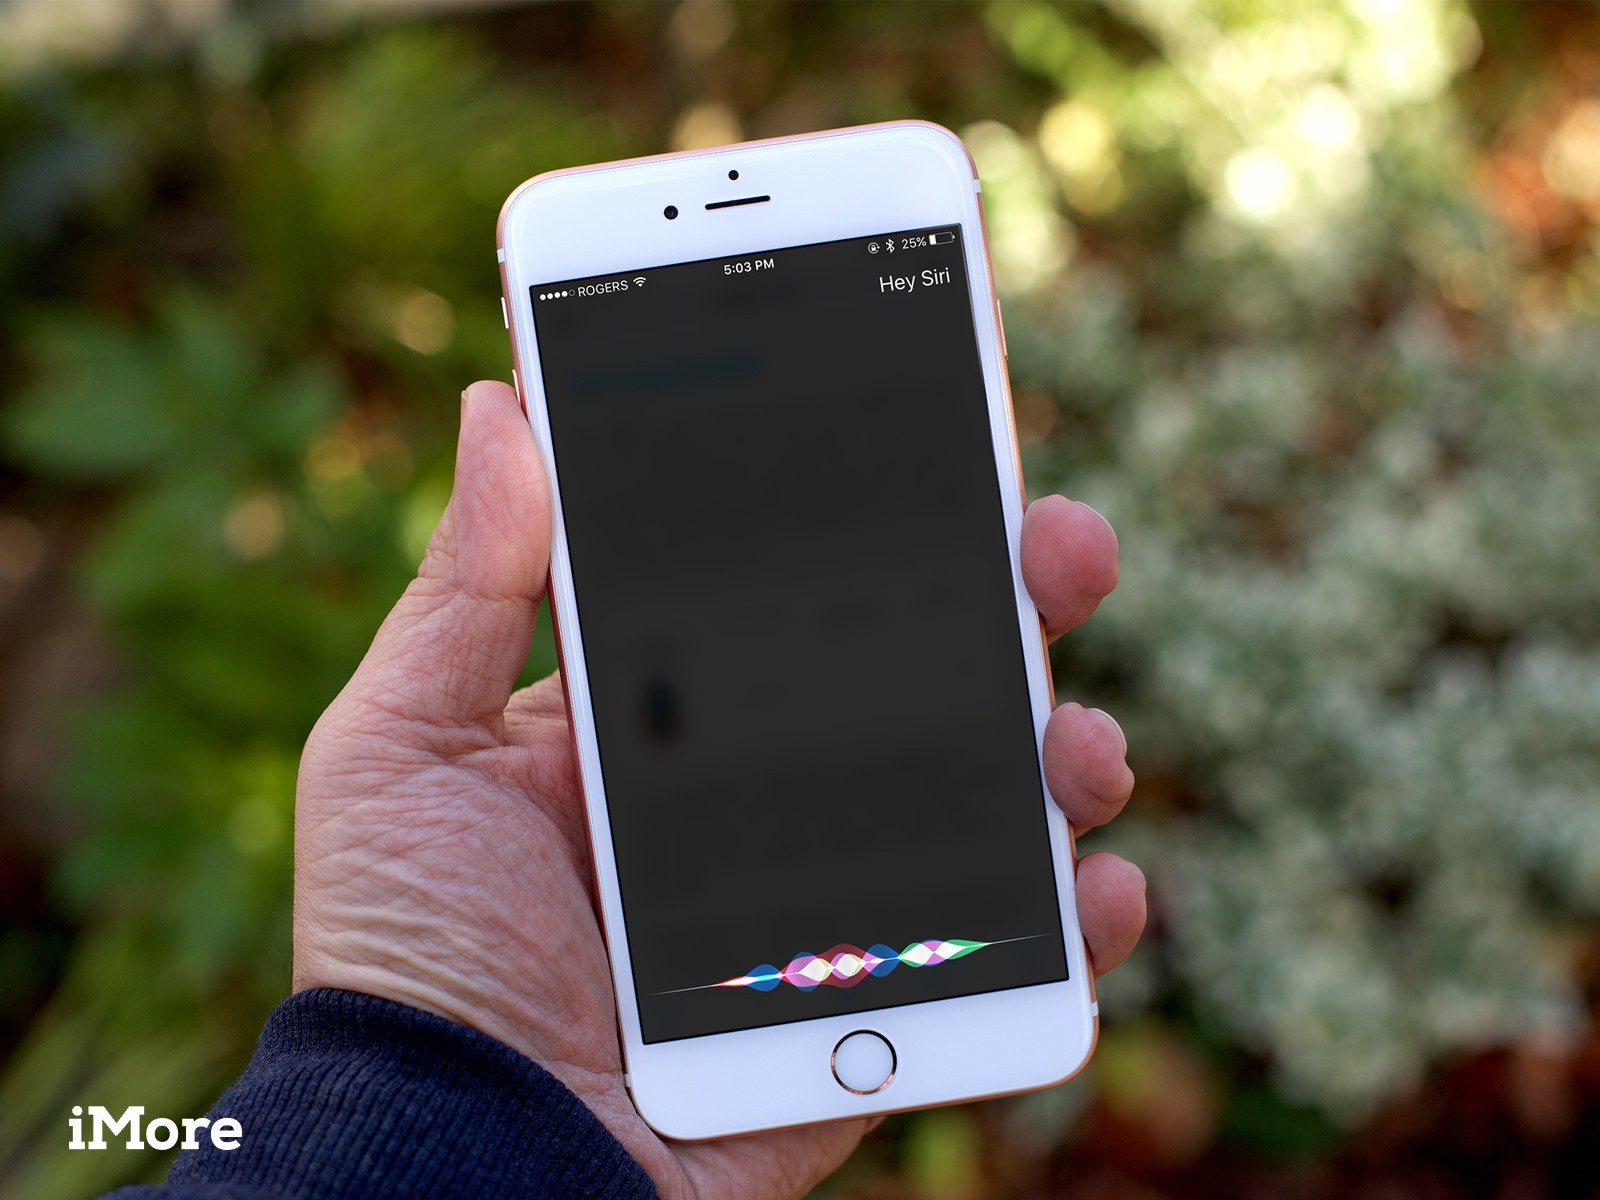 How to type instead of talk to Siri